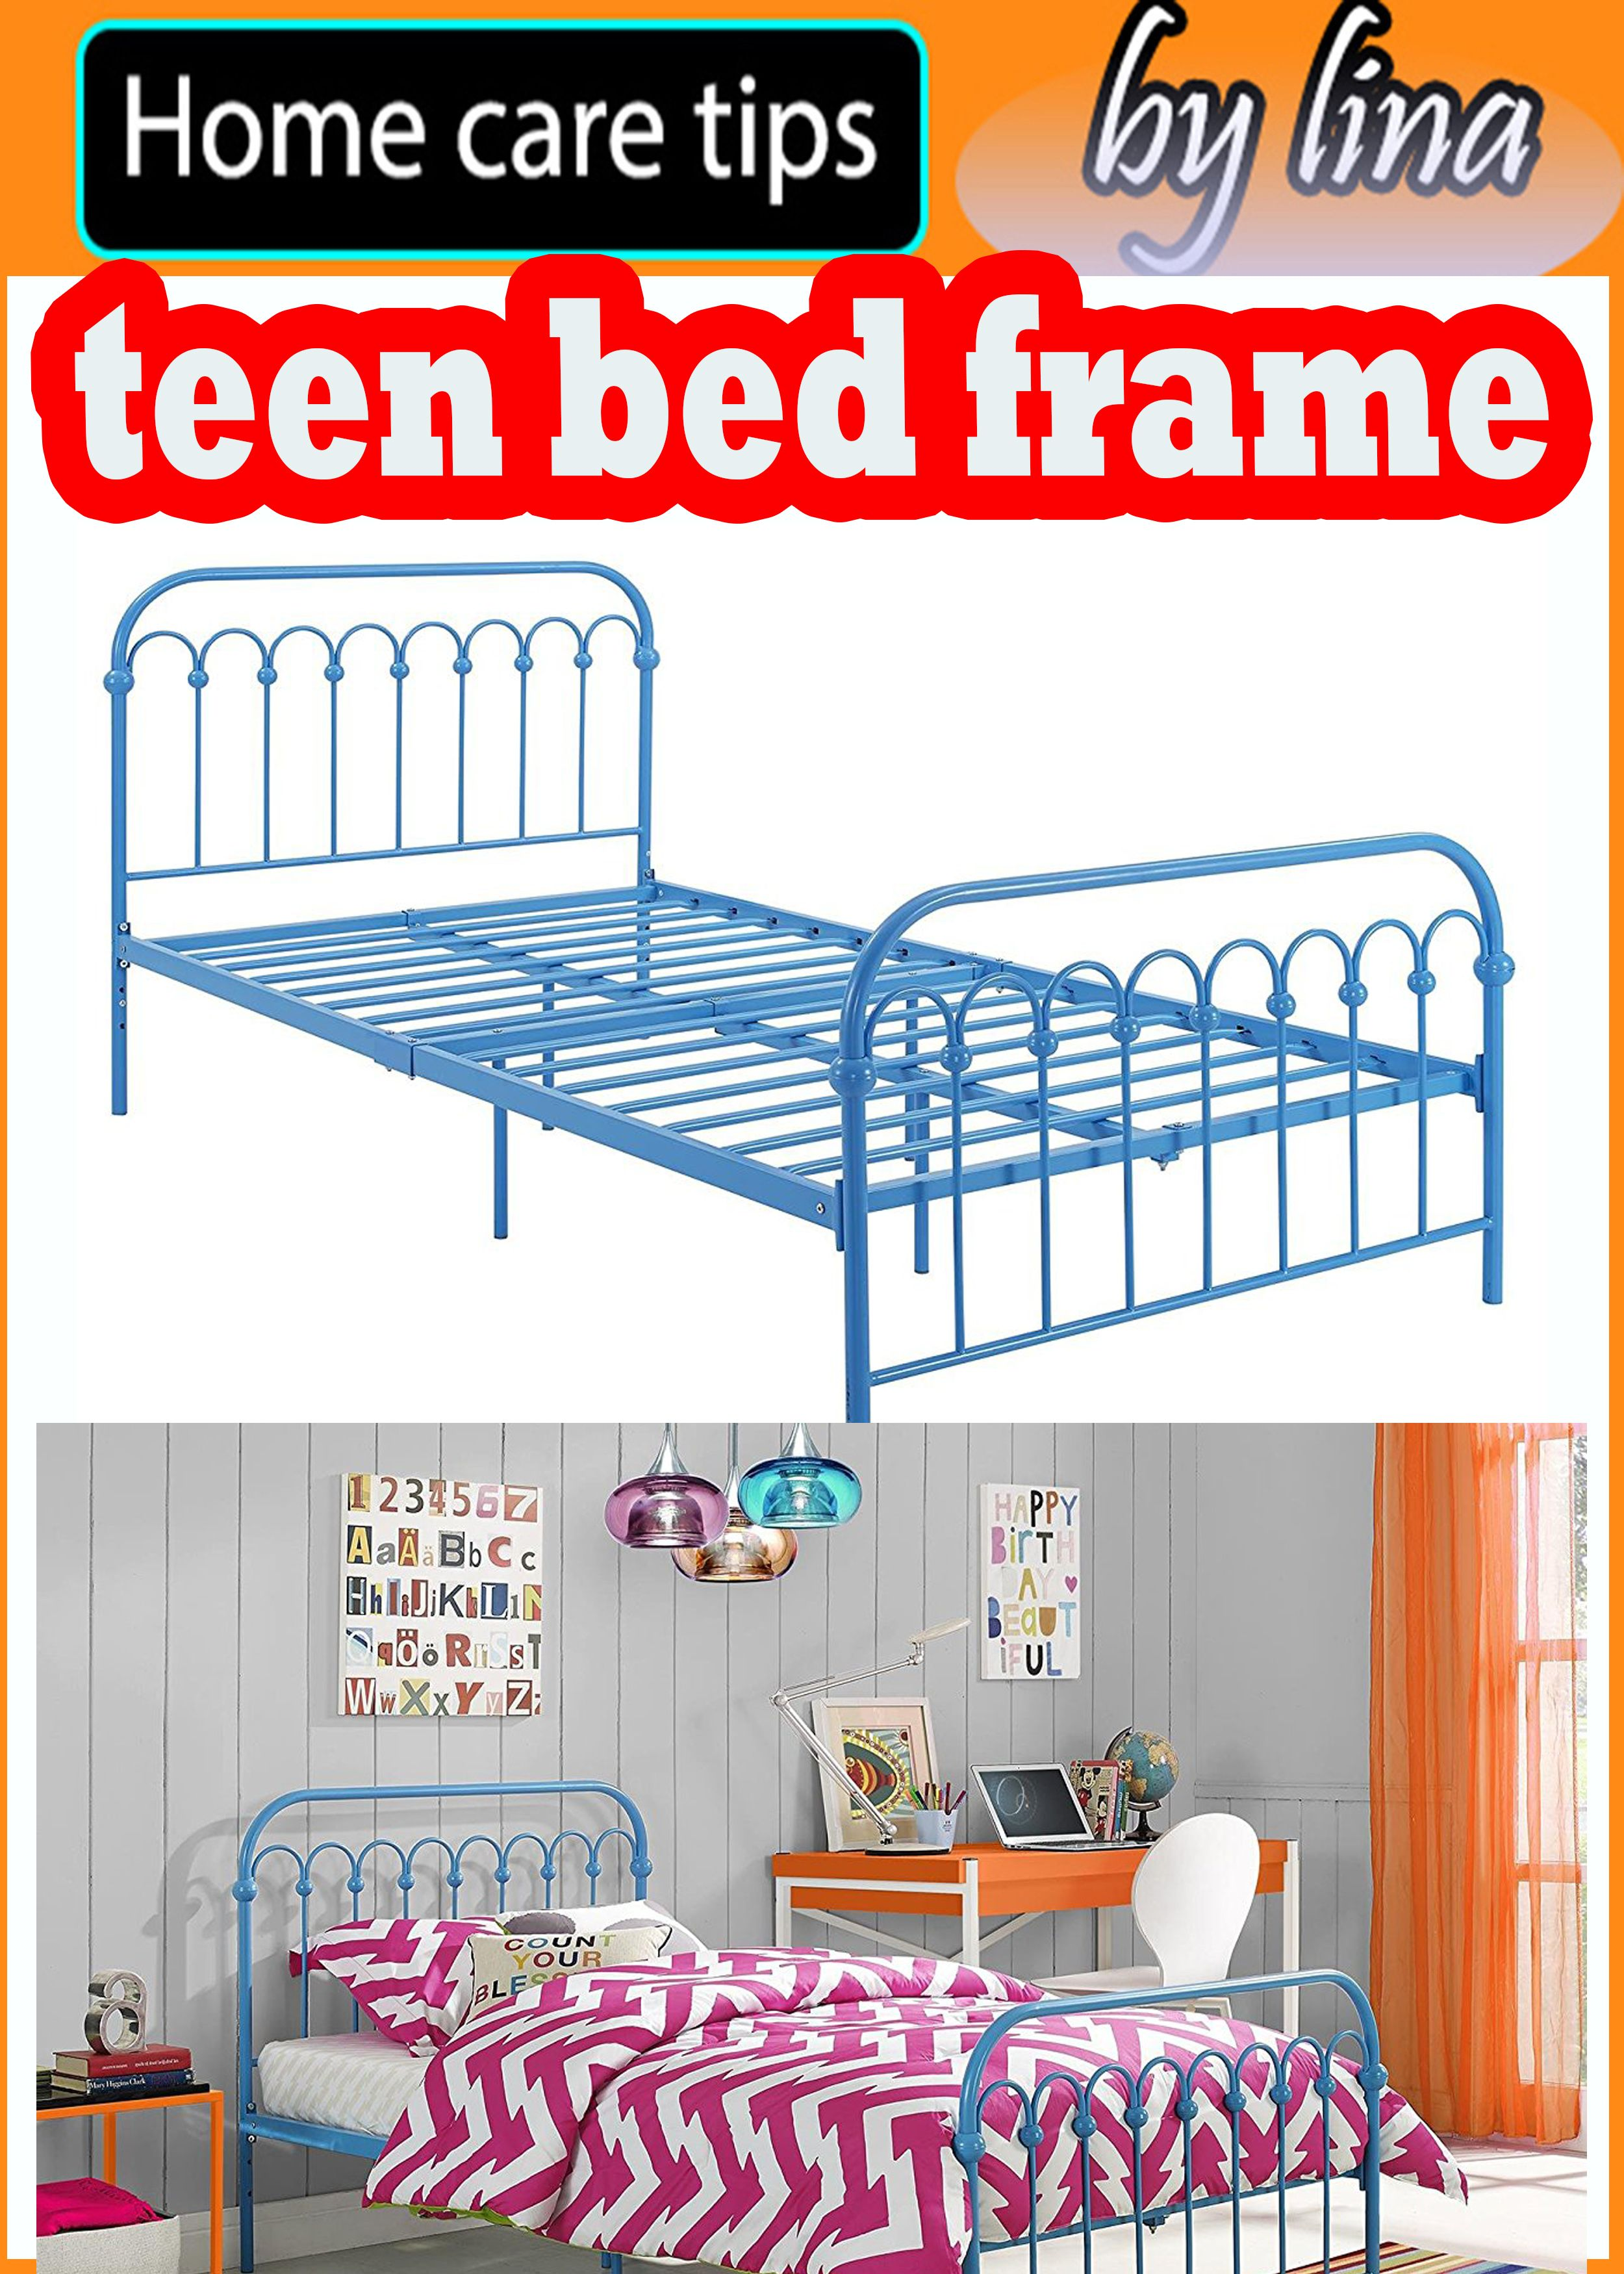 Bright Pop Metal Sturdy Bed Frame Adjustable Height For Underbed